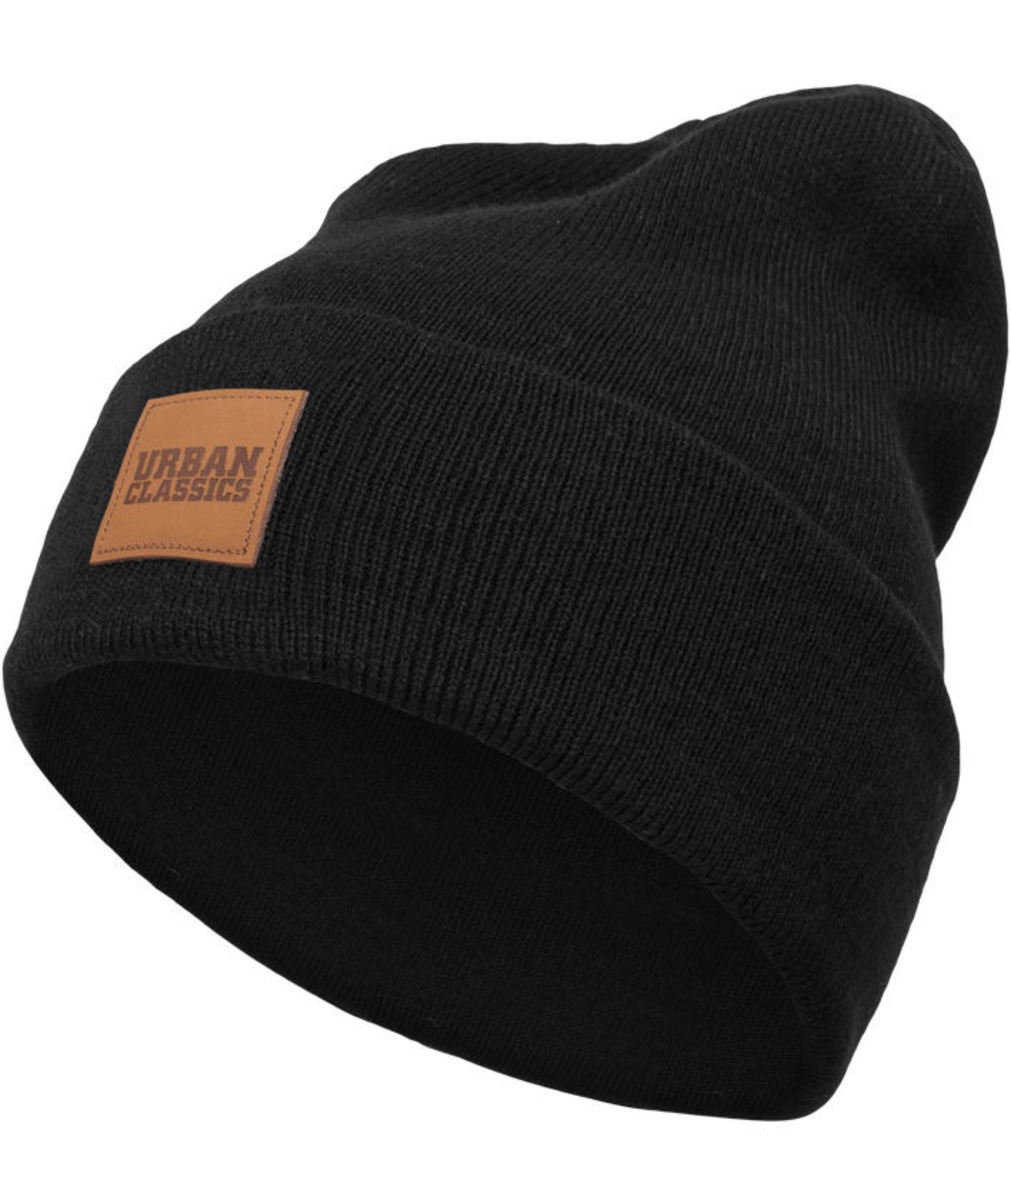 kulich URBAN CLASSICS - Leatherpatch - black - TB626